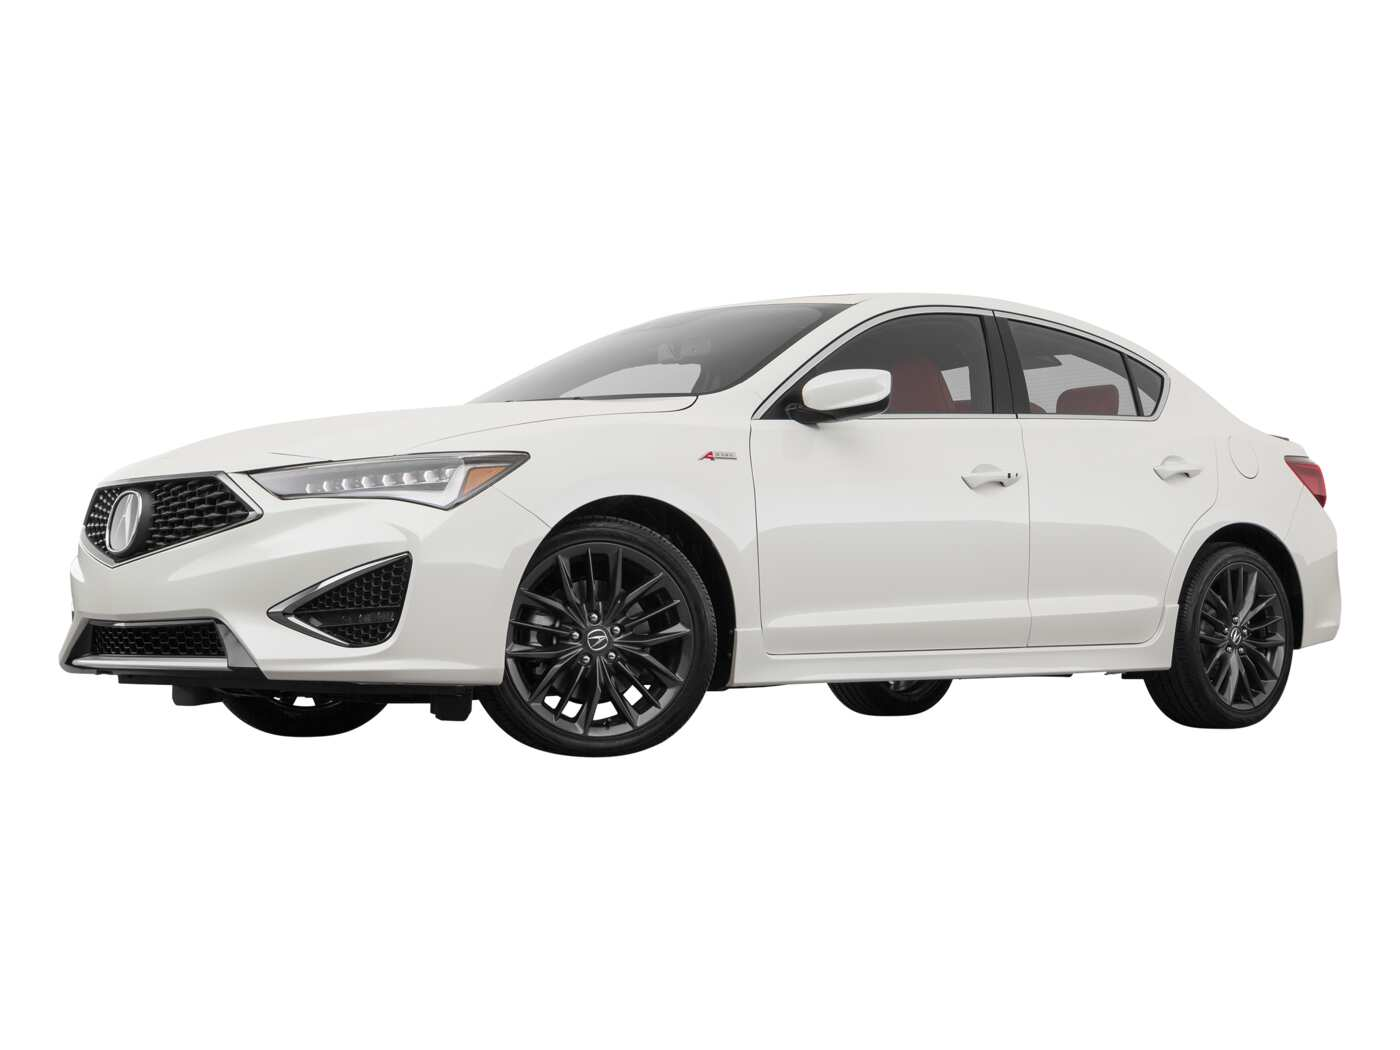 2020 acura ilx with a-spec/premium package | ideal auto